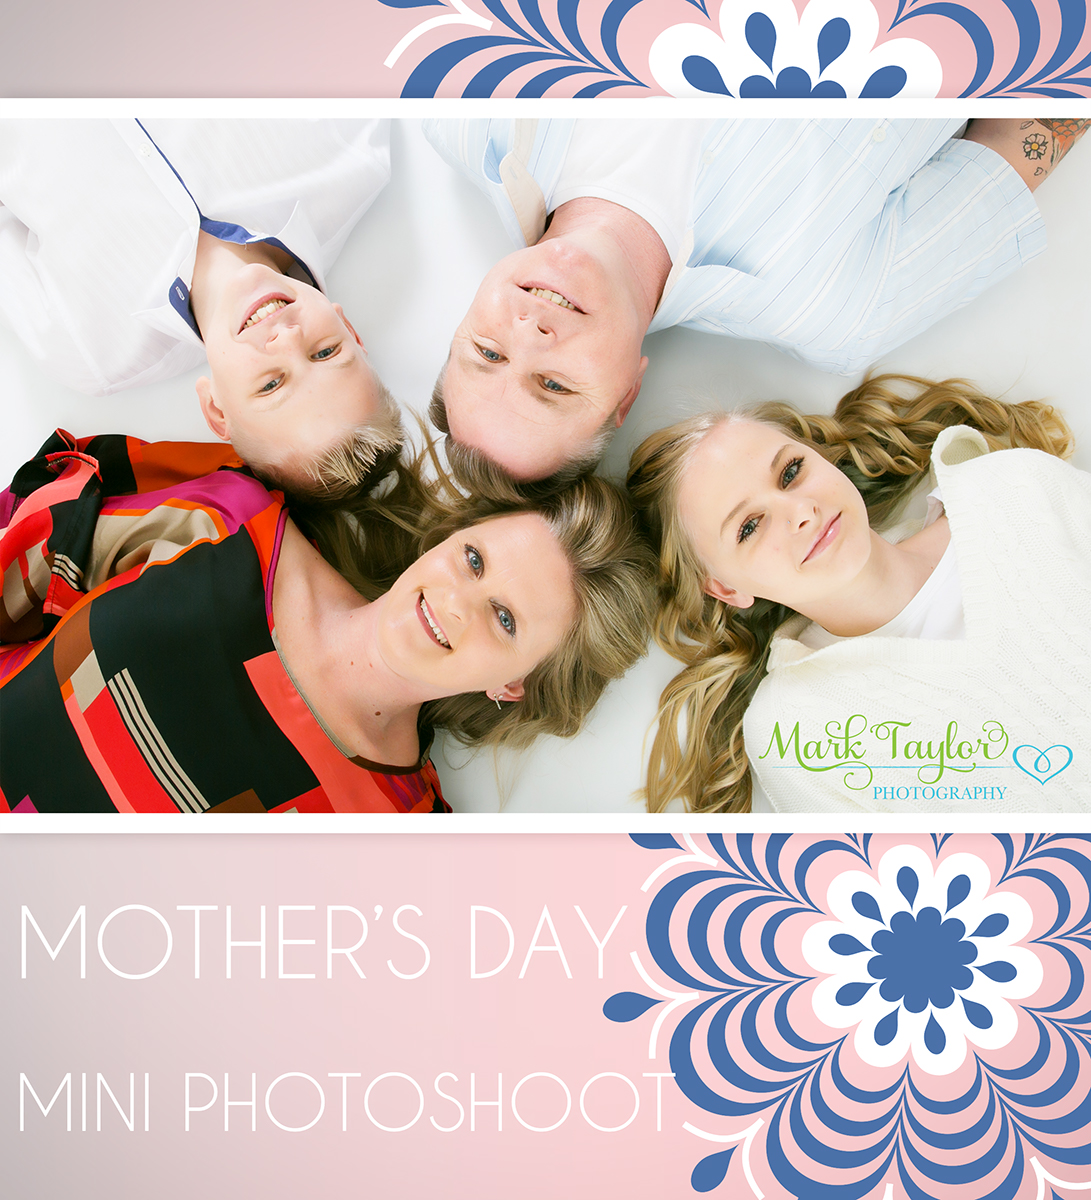 Mothers day Photoshoot